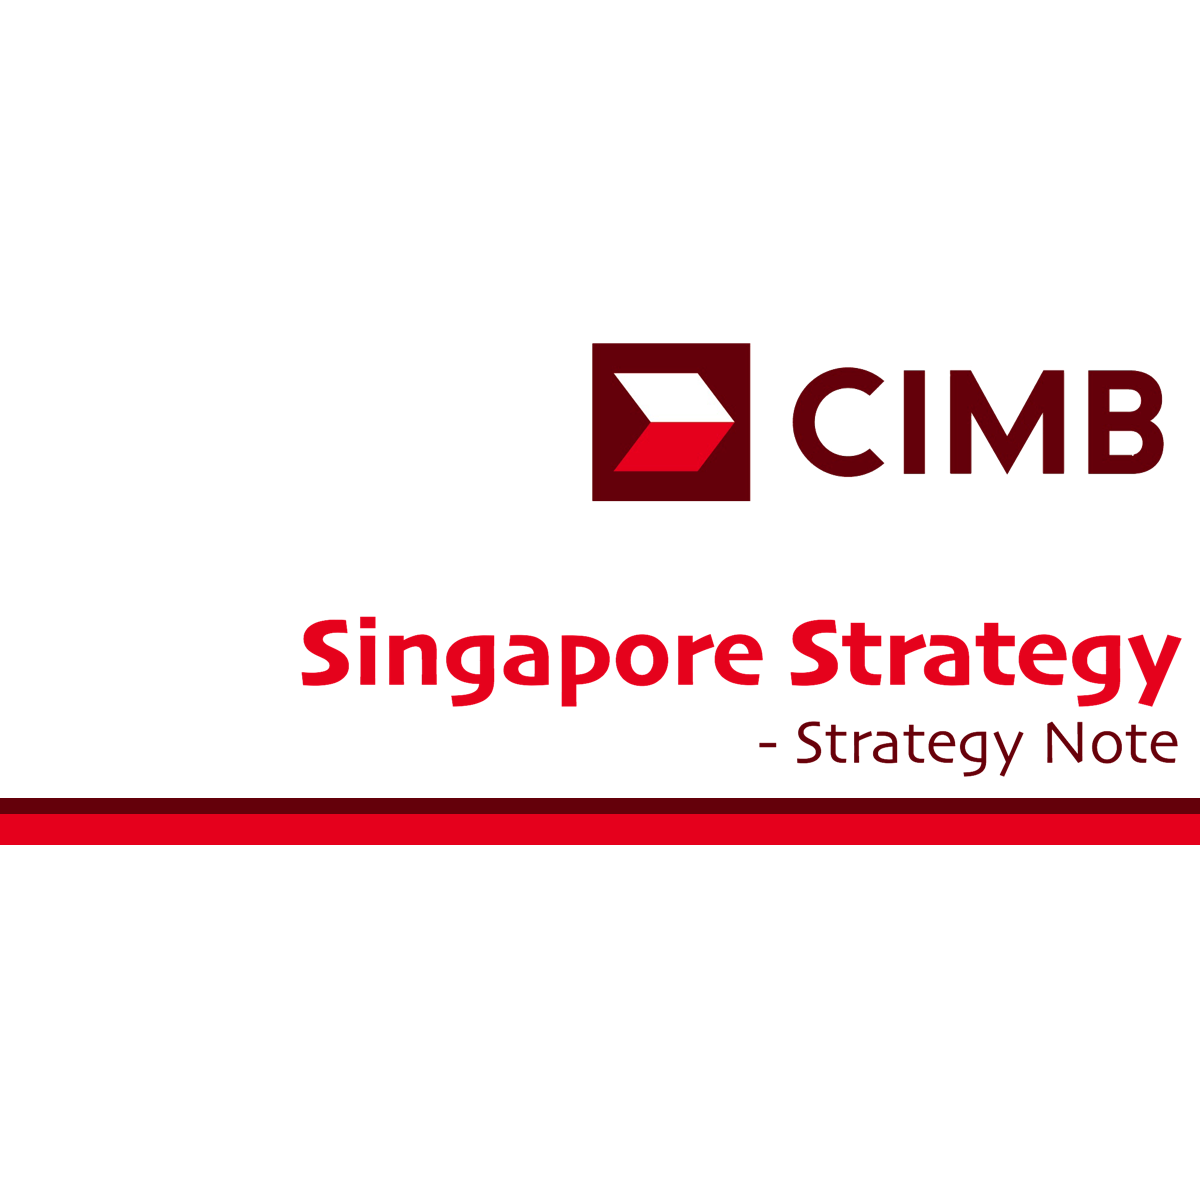 Singapore Strategy - CIMB Research 2017-11-16: 3Q17 More Misses; 2018 Sneak Peek: All Is Well